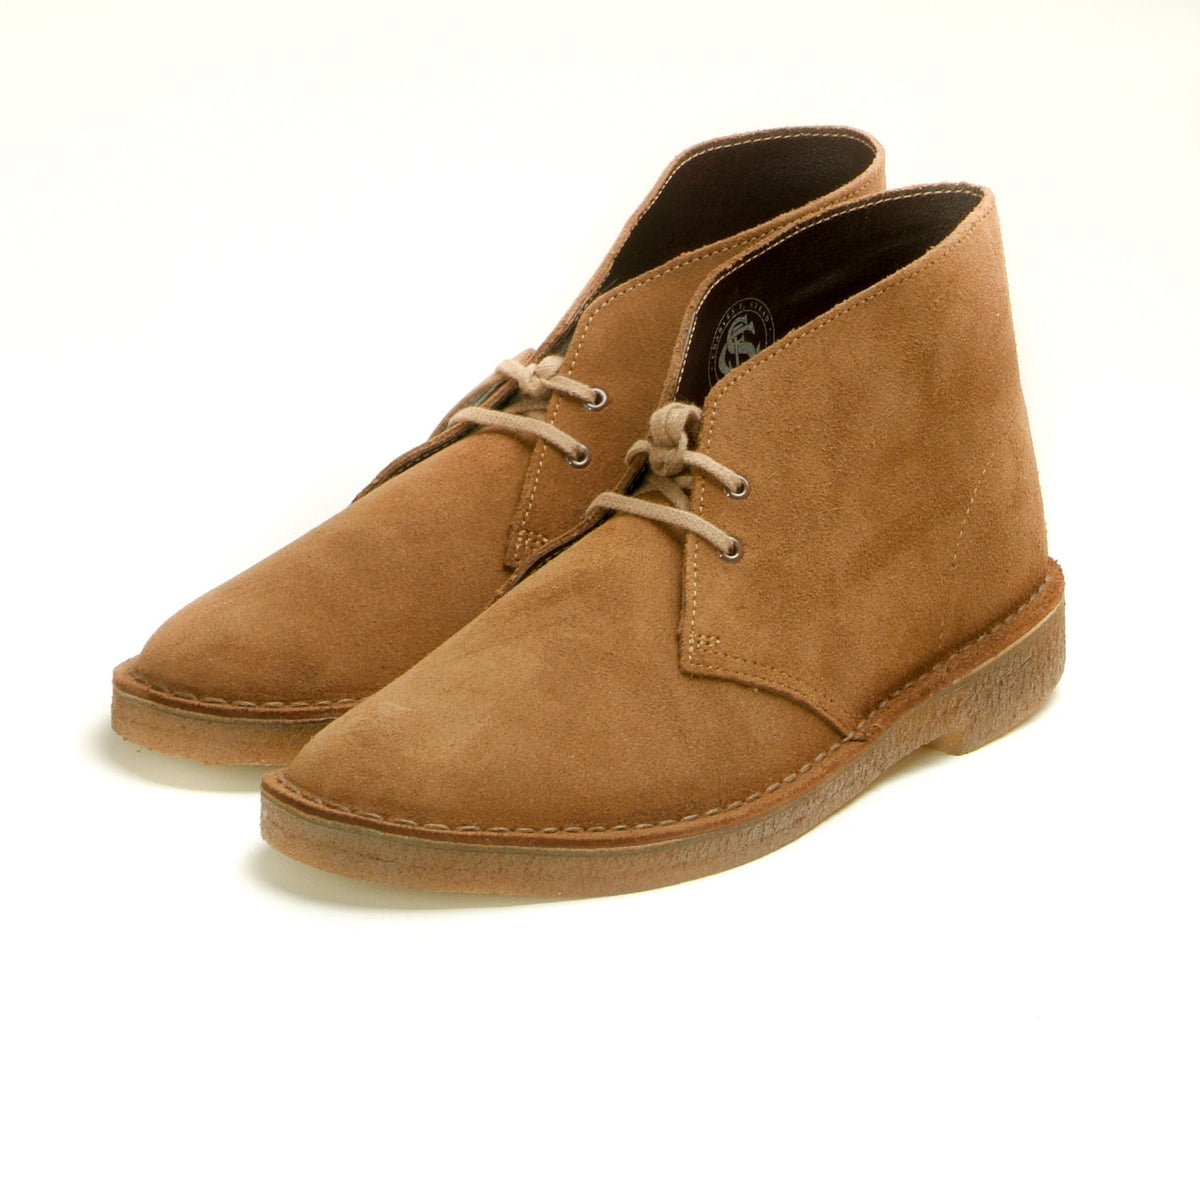 CLARKS ORIGINALS - DESERT BOOT - COLA SUEDE